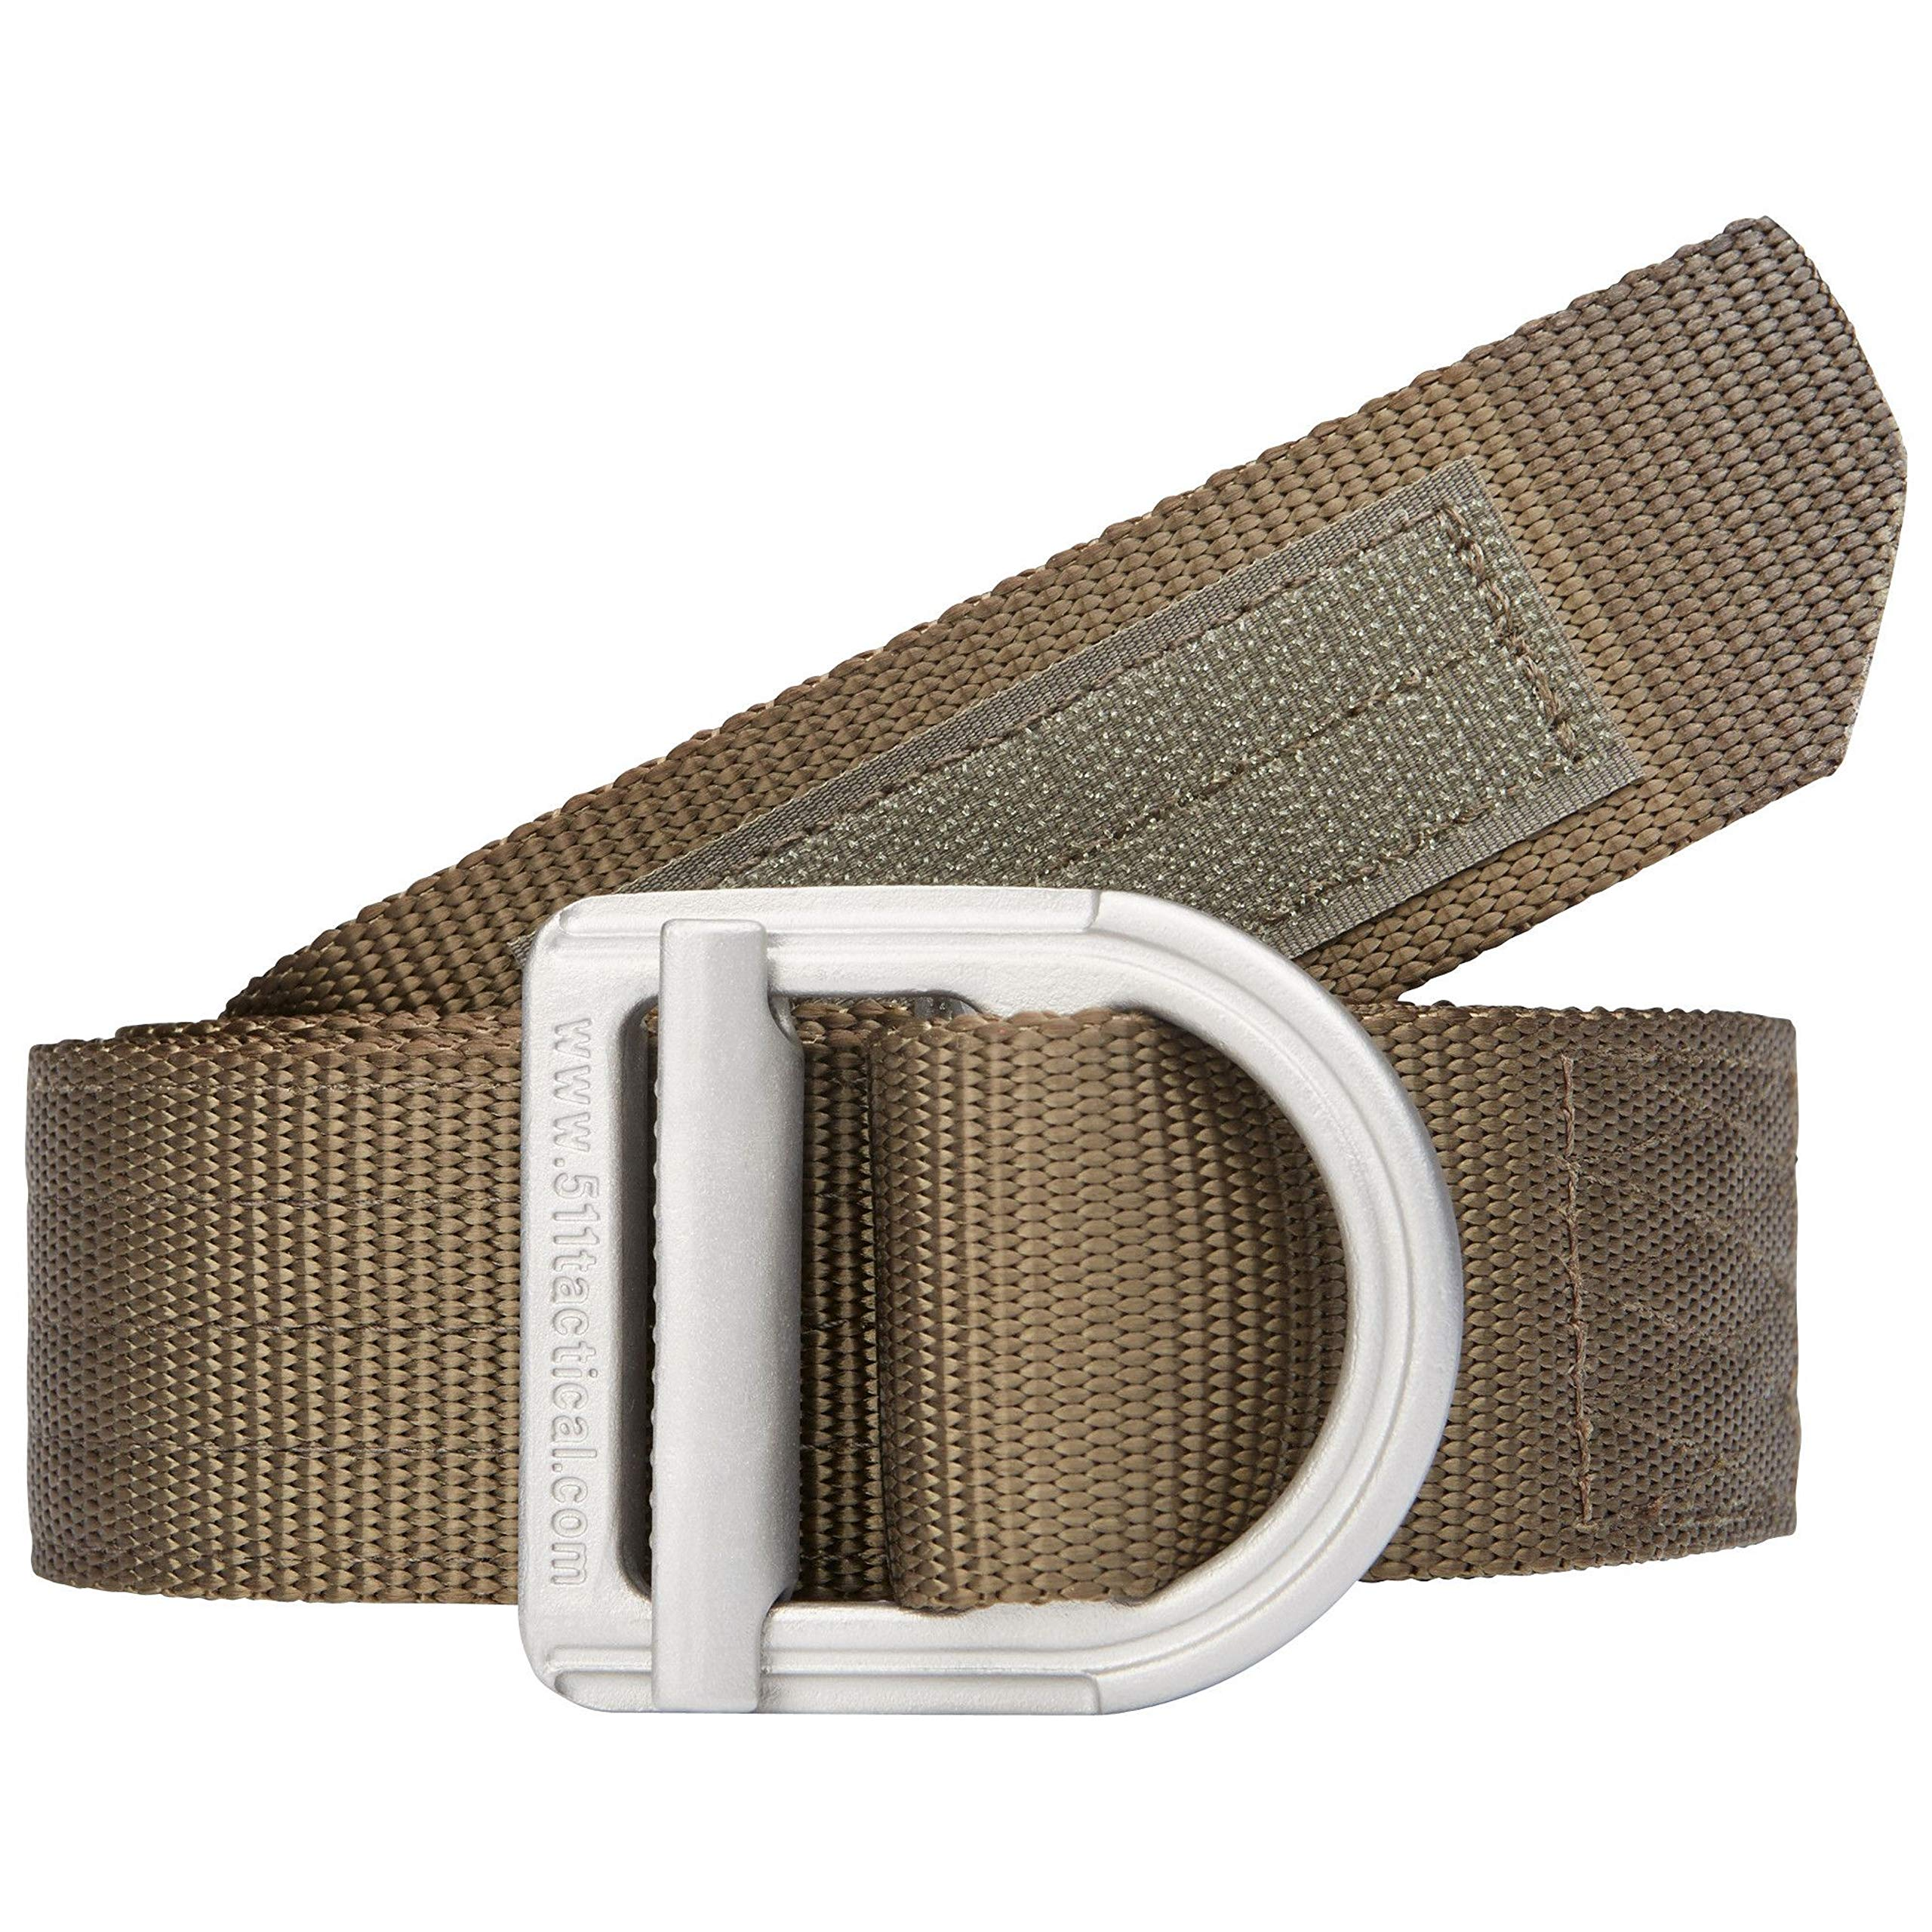 5.11  Trainer 1.5'' Tactical Belt, Heavy Duty for Military and Law Enforcement, Style 59409, Tundra (192), S